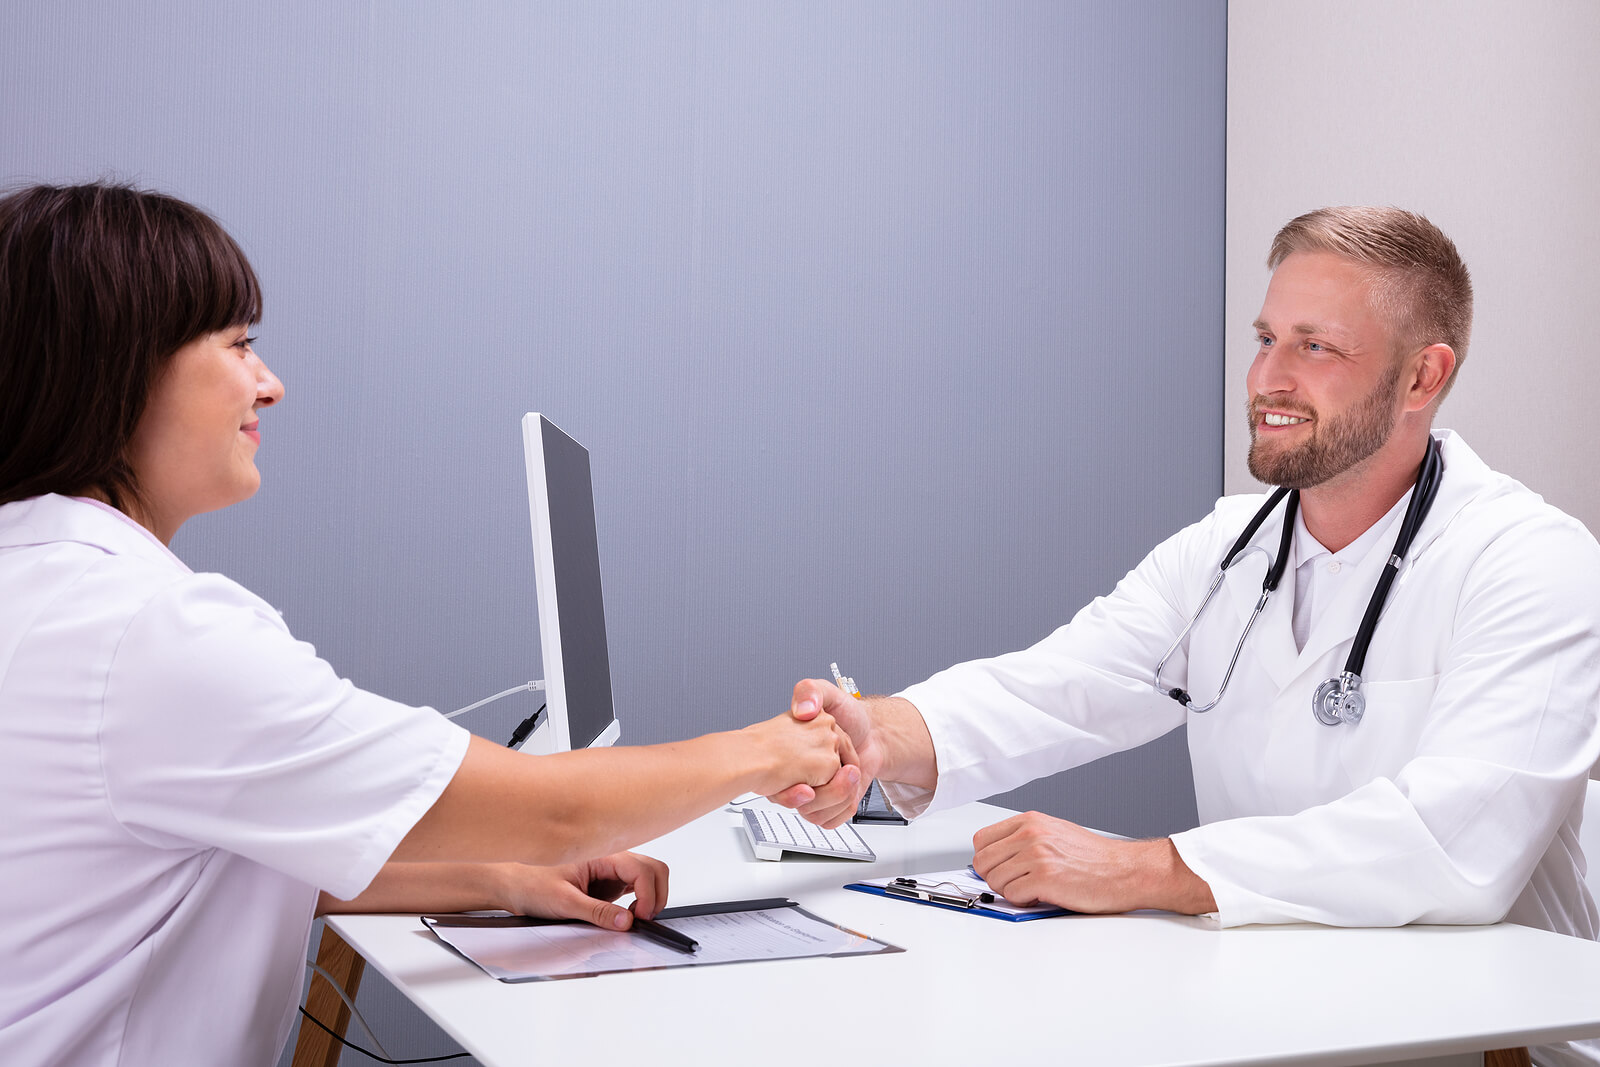 nurse and doctor interview